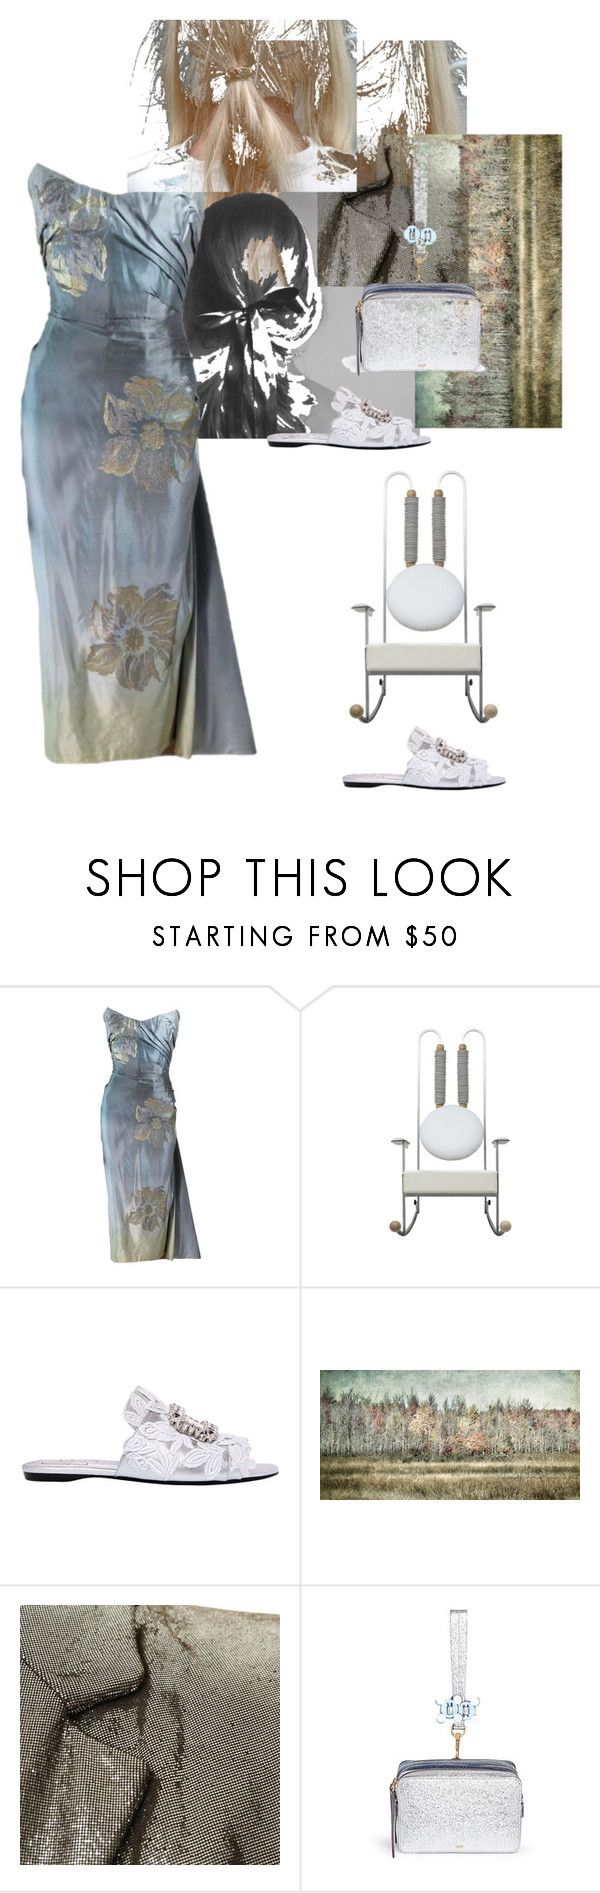 """Looking forwards Looking back"" by palmgrass99 ❤ liked on Polyvore featuring Roger Vivier, Patrizia Pepe and Anya Hindmarch"